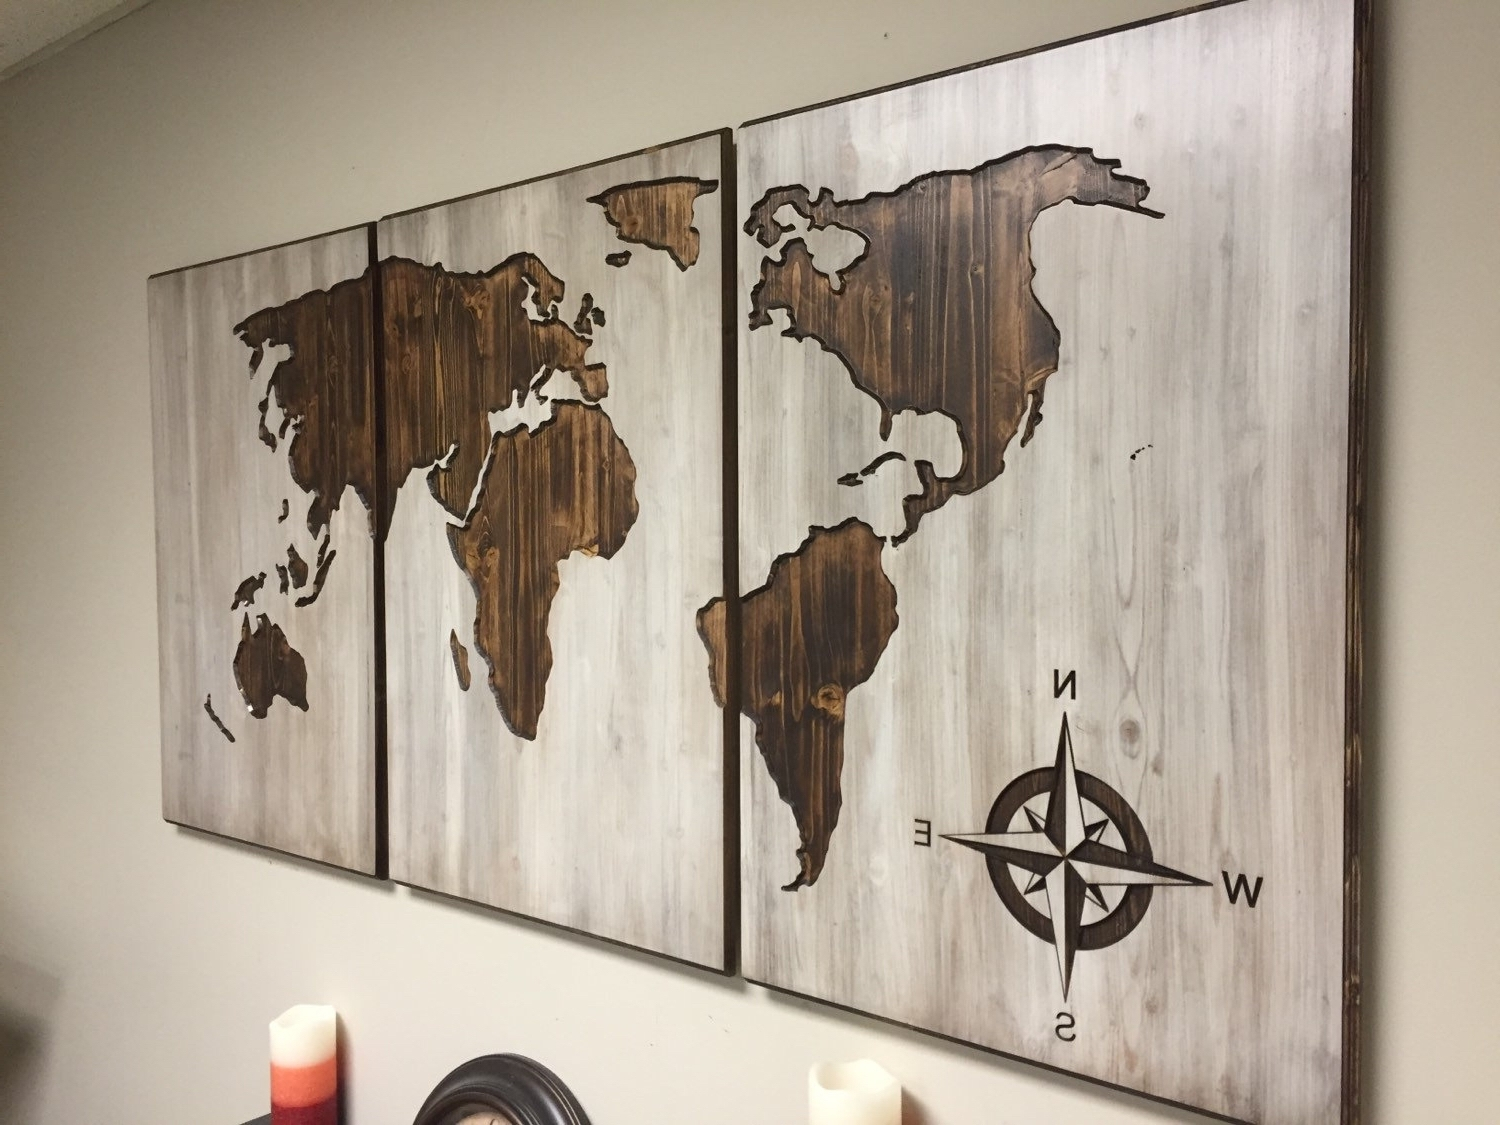 Diy World Map Wall Art Throughout Latest Diy World Map Wall Decor – Arabcooking (View 12 of 15)